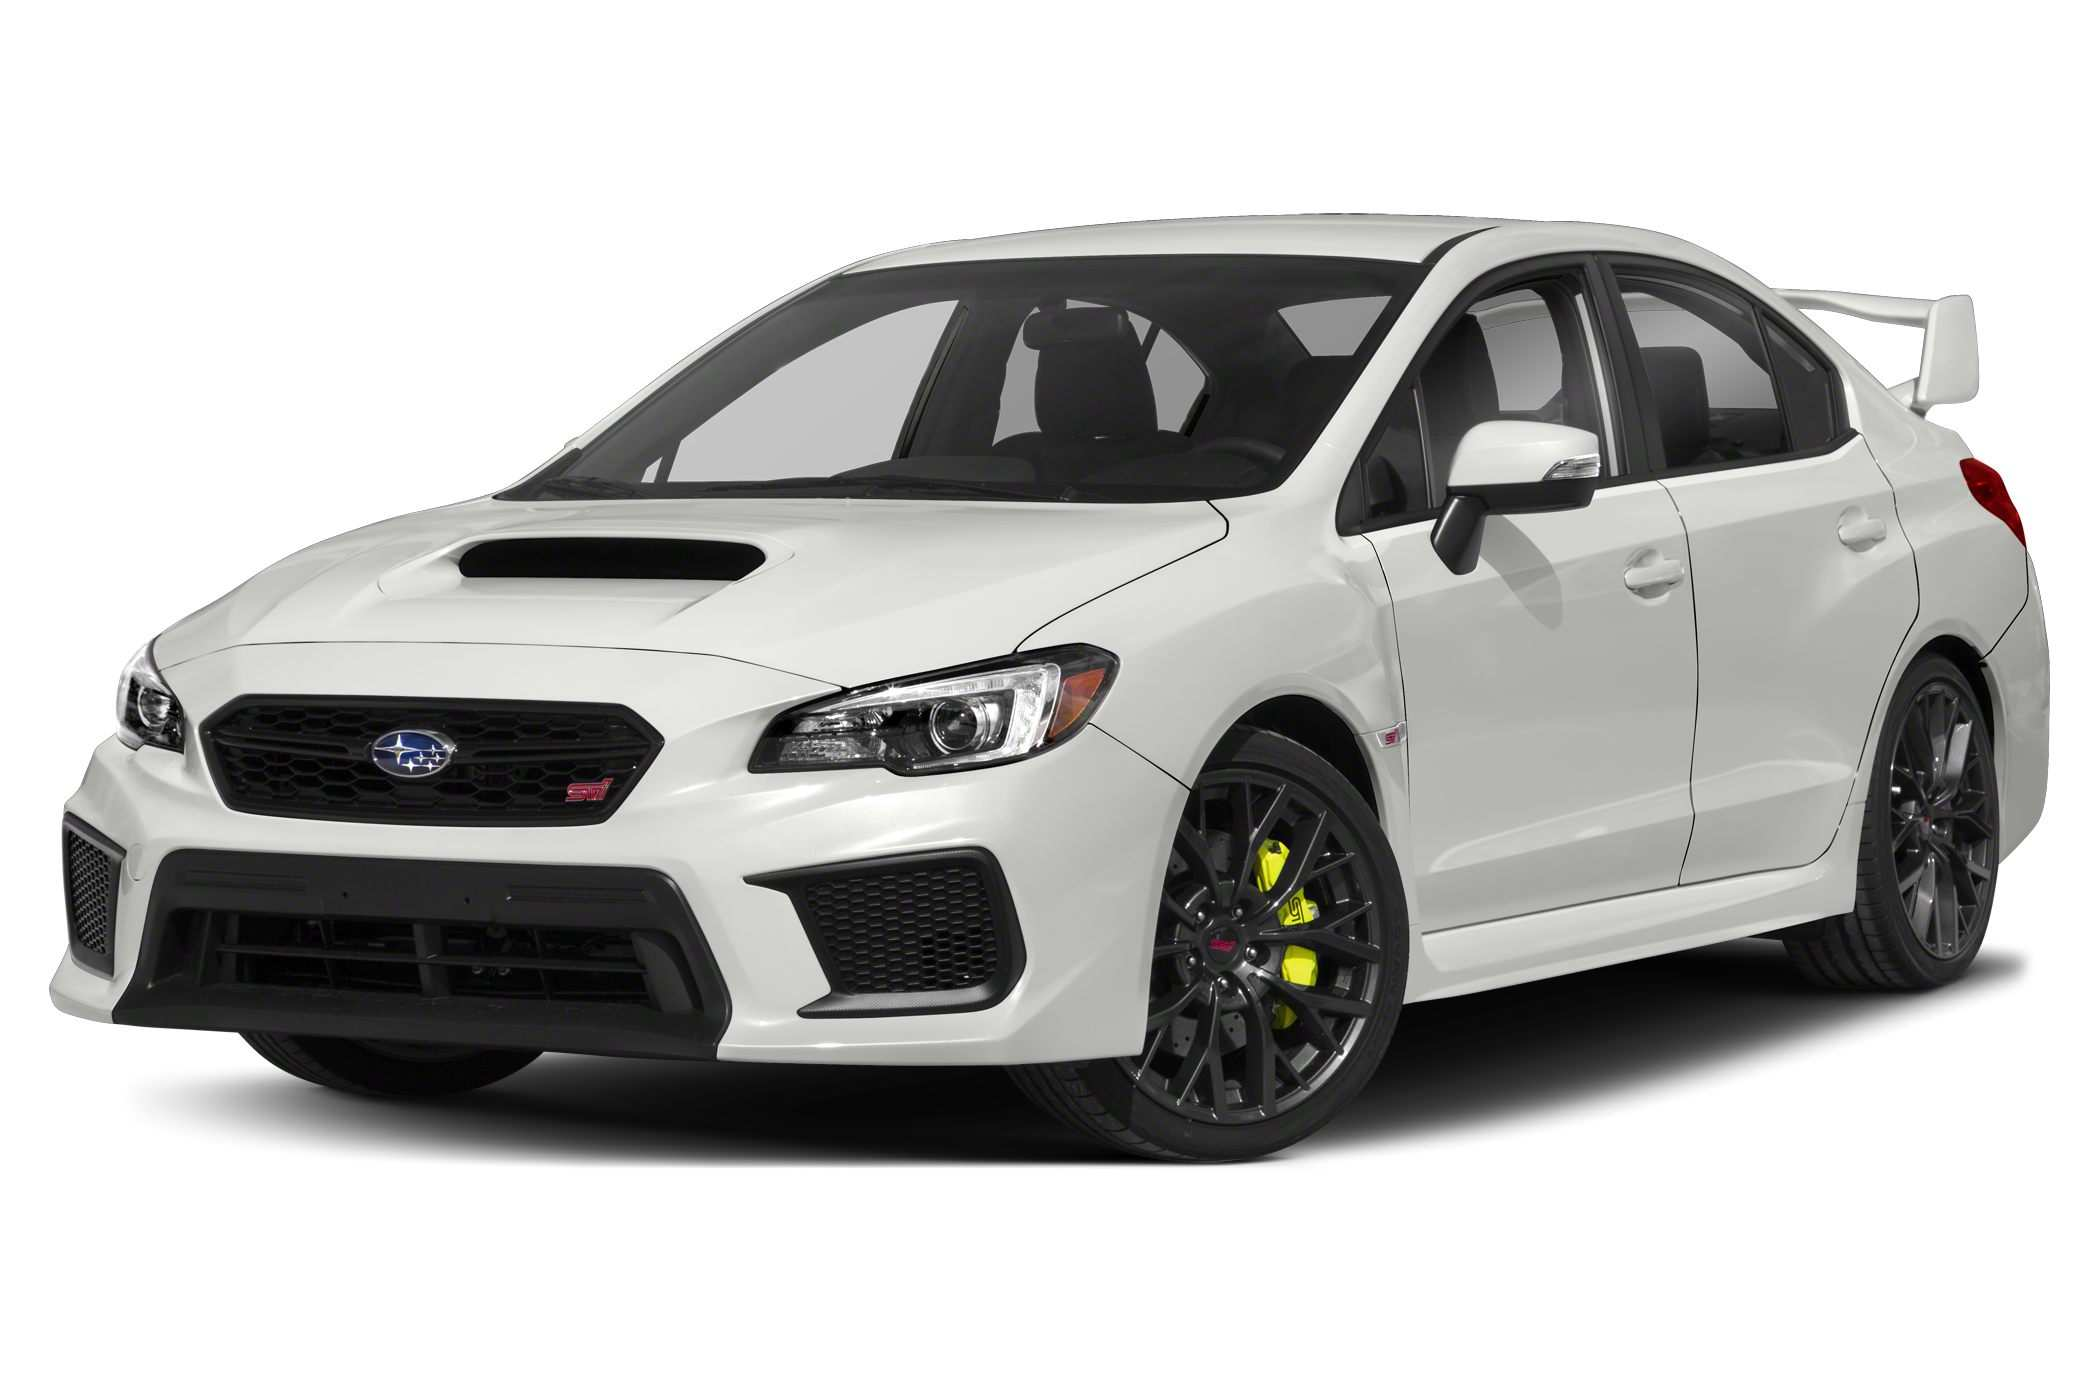 84 New The 2019 Subaru Wrx Quarter Mile Price And Review Rumors for The 2019 Subaru Wrx Quarter Mile Price And Review